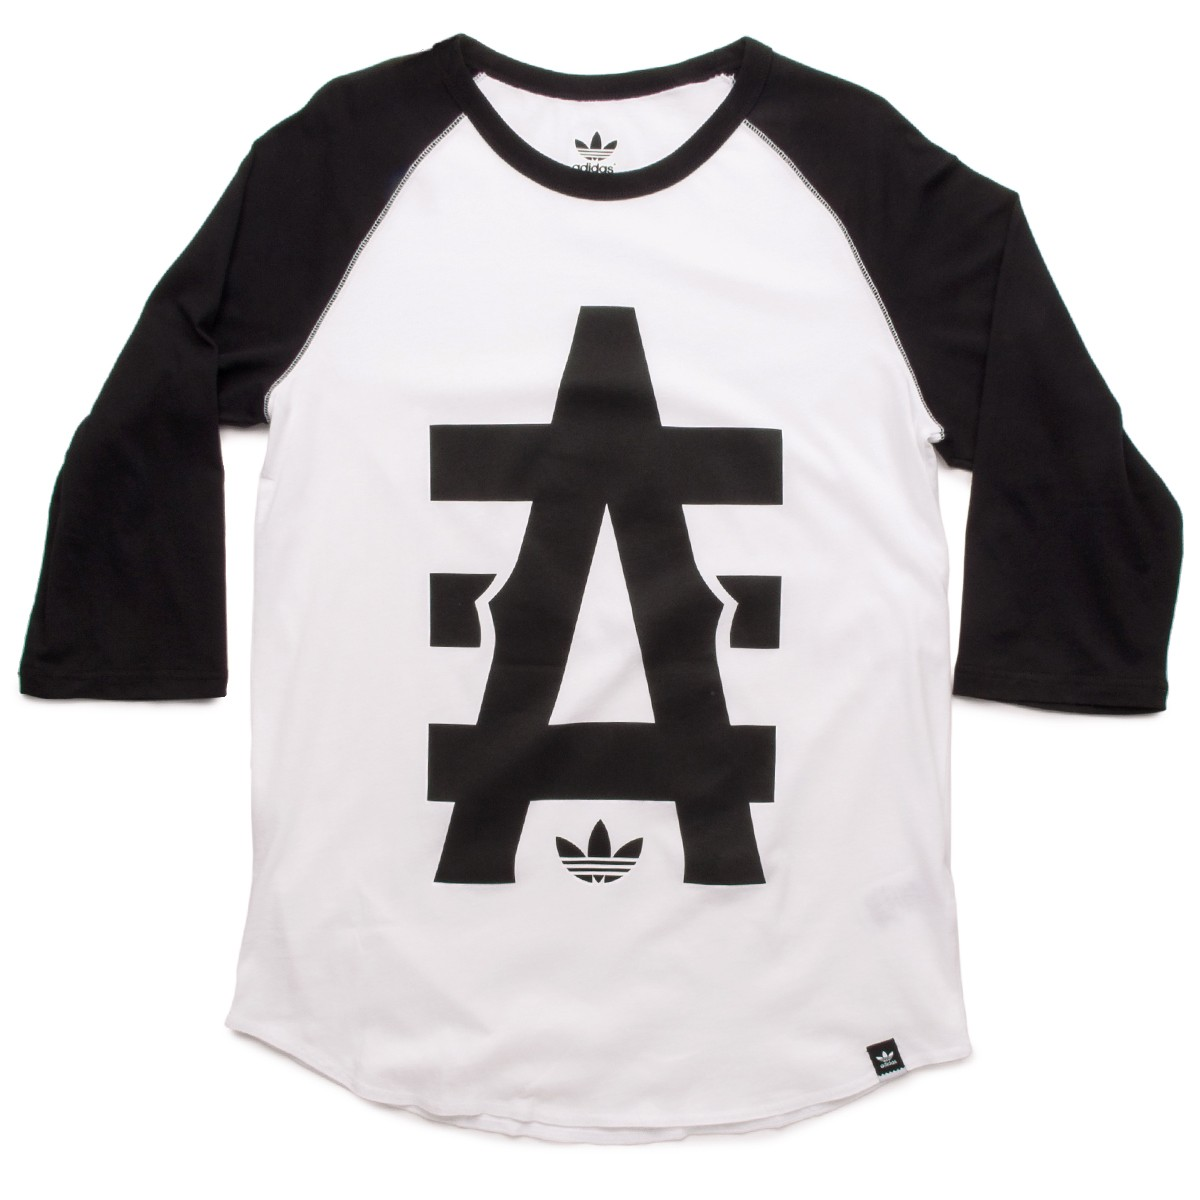 Adidas t shirt black white - Black And White Adidas T Shirt